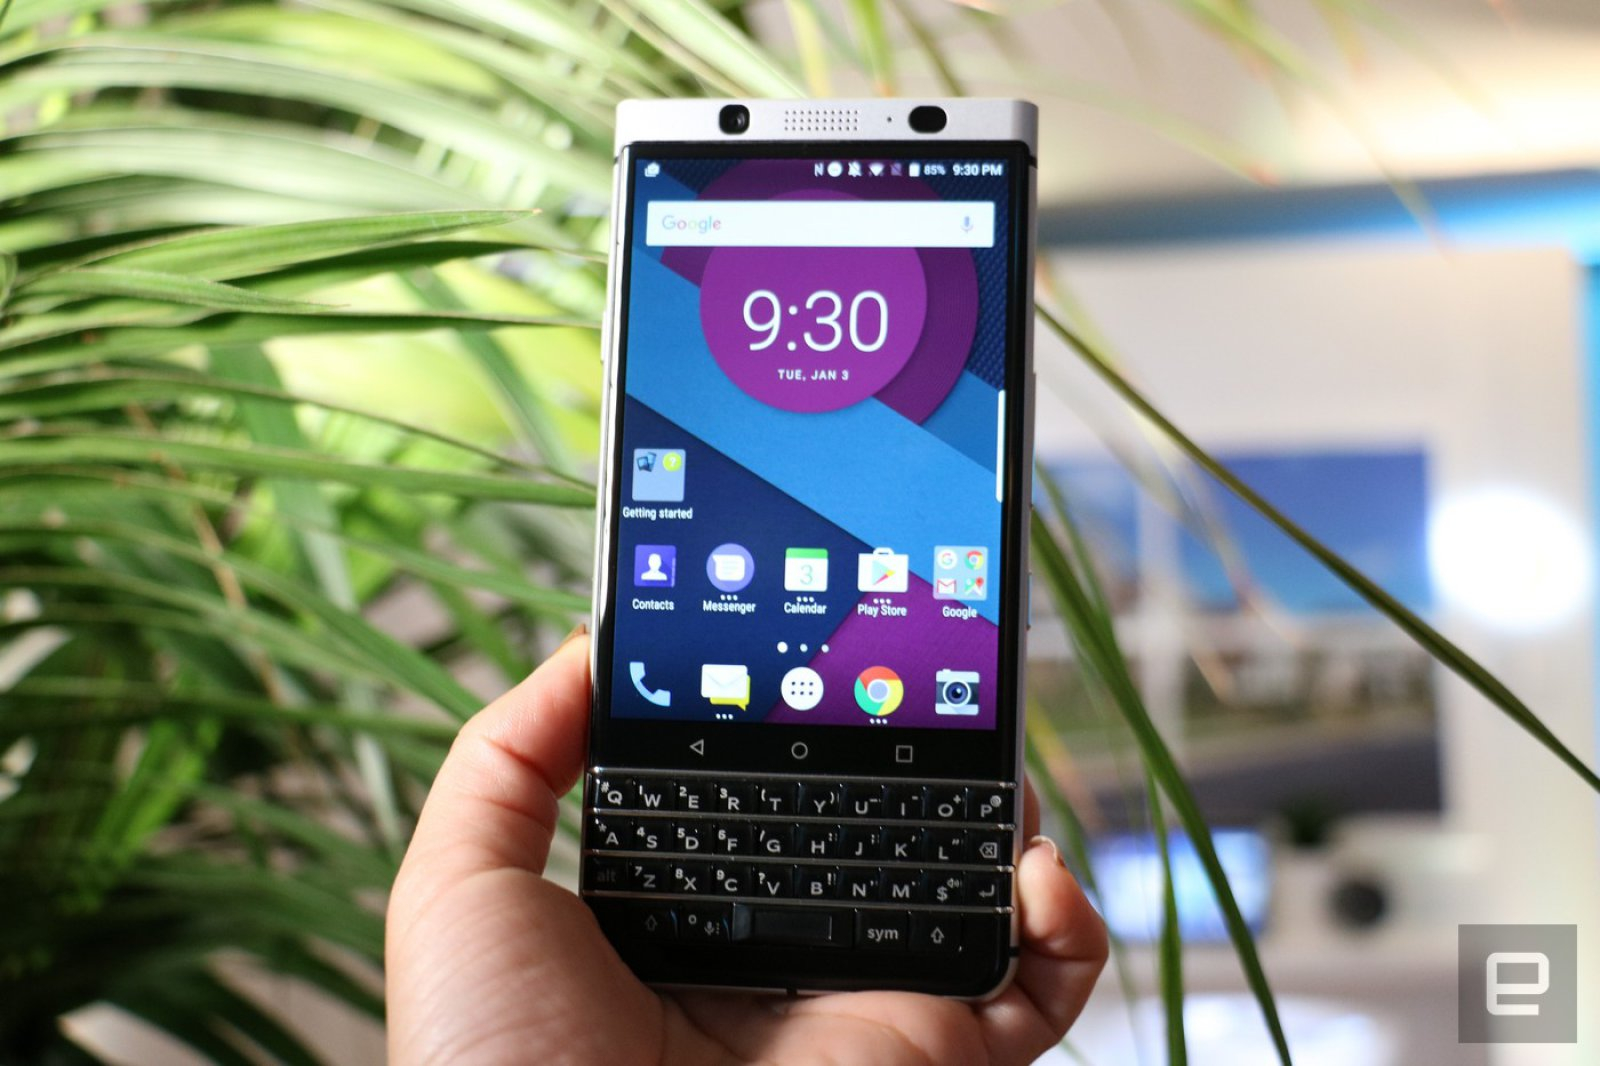 Get your BlackBerry MWC 2017 liveblog right here